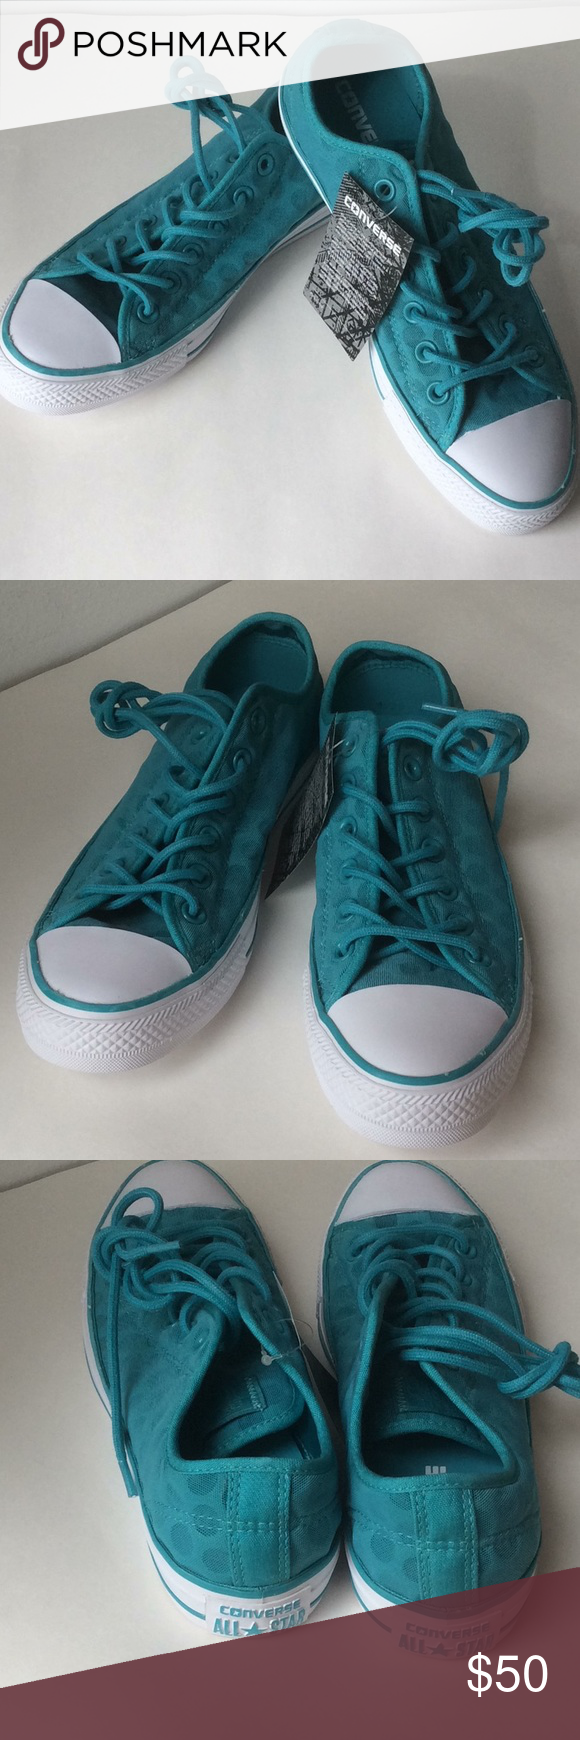 Nwt🌟converse nwt Clothes design, Converse, Fashion design